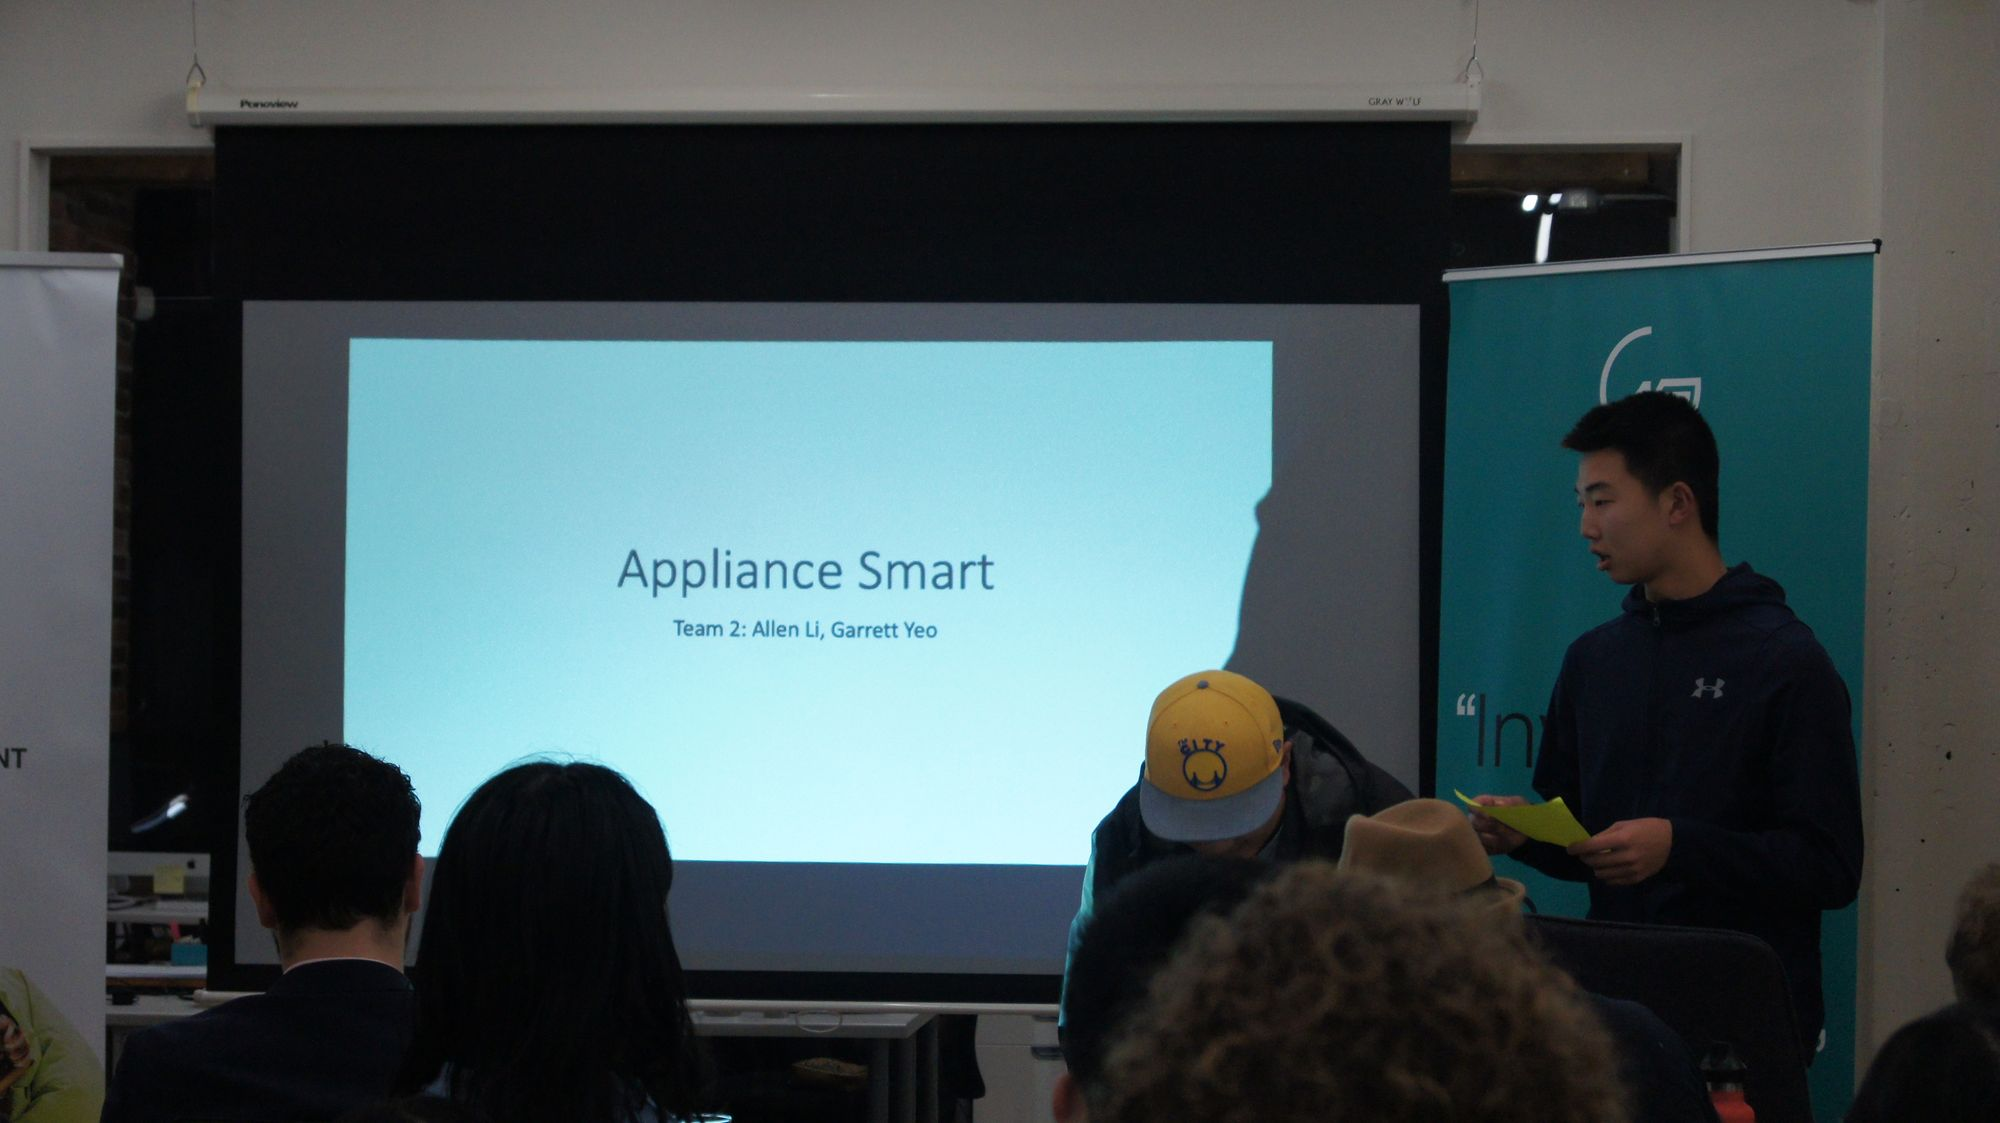 It's Team 2's turn to introduce Appliance Smart.